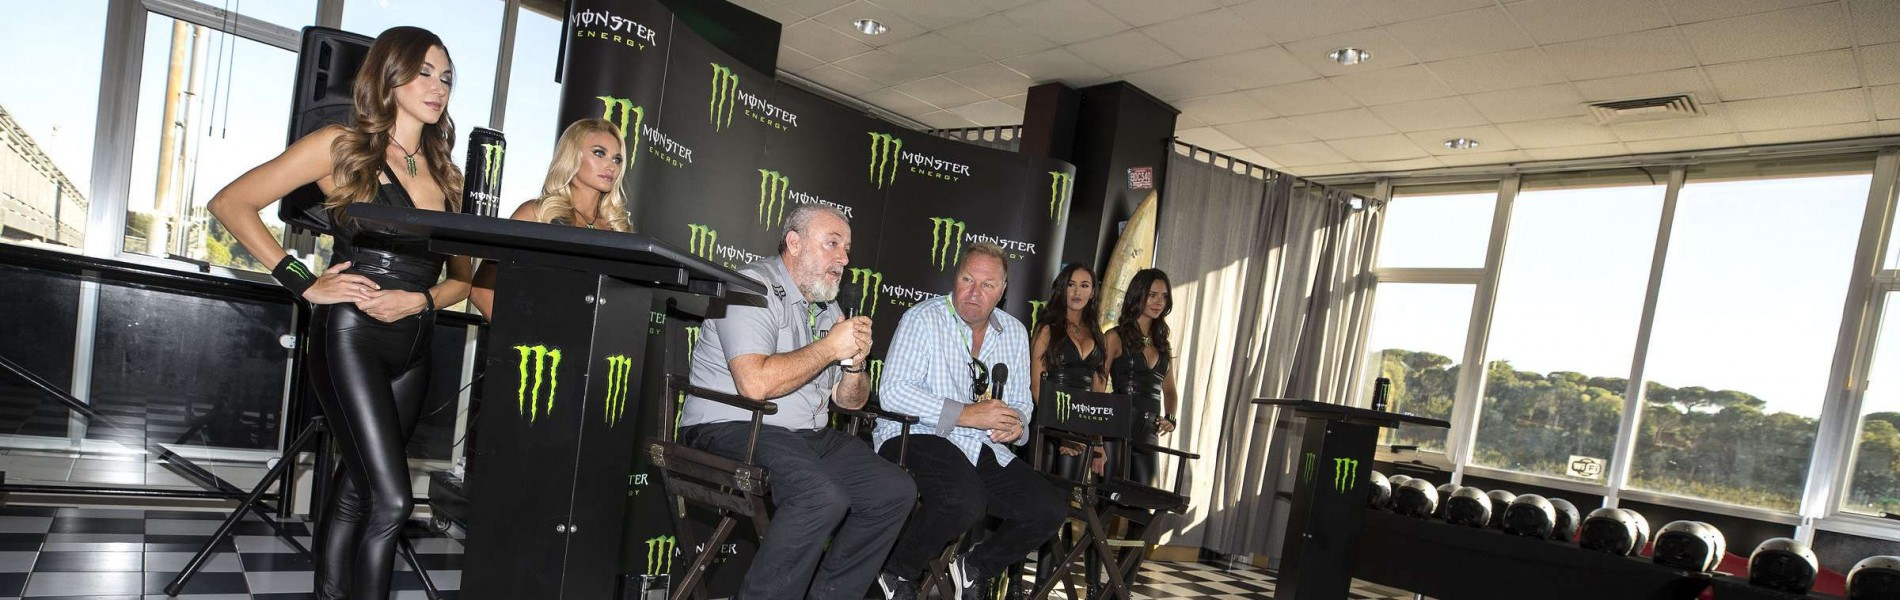 Dave Gowland & Youthstream at the 2018 Monster Energy MXGP announcement